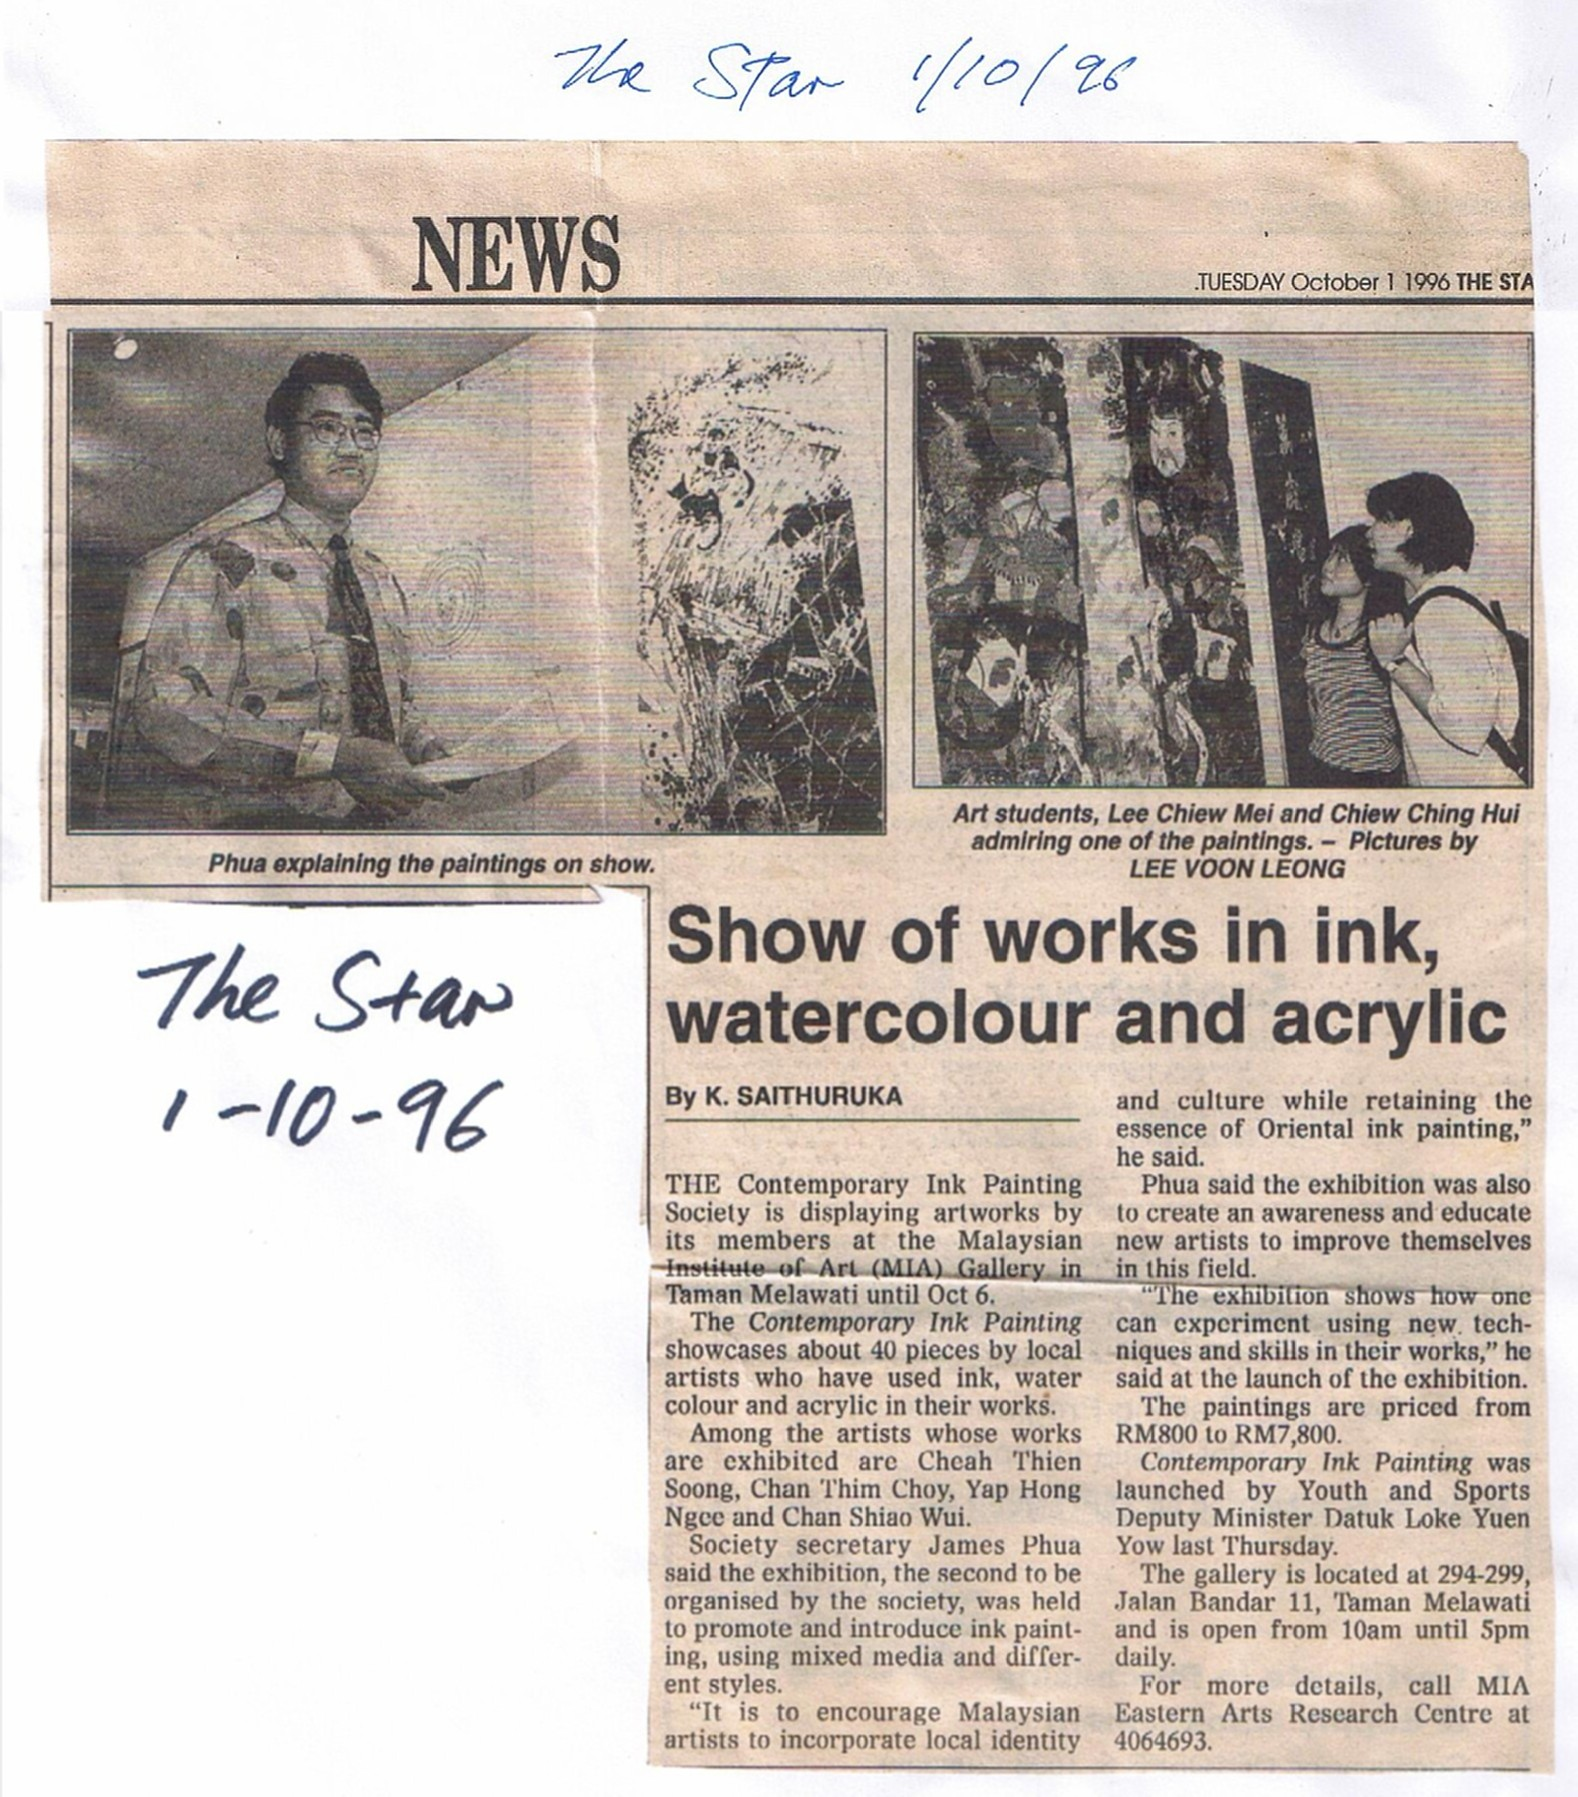 Me ,the Chairman of the Contemporary Ink Painting Society's art exhibition organizing committees, explaining the art on display during the Society's 2nd  art exhibition in 1997.